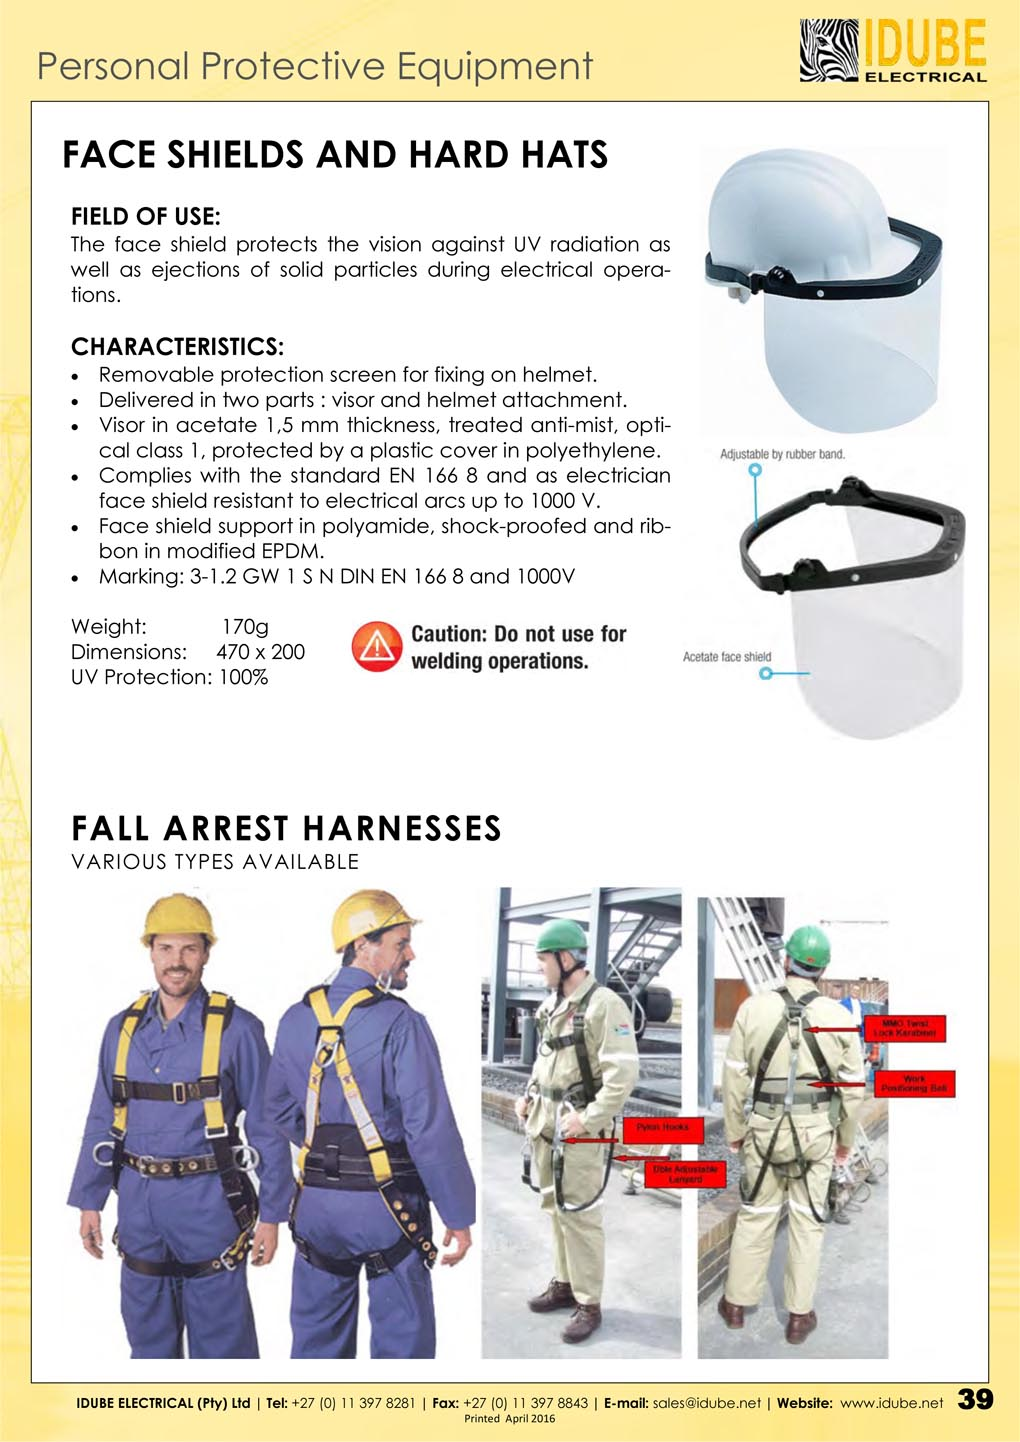 Personal Protective Equipment Idube Electrical